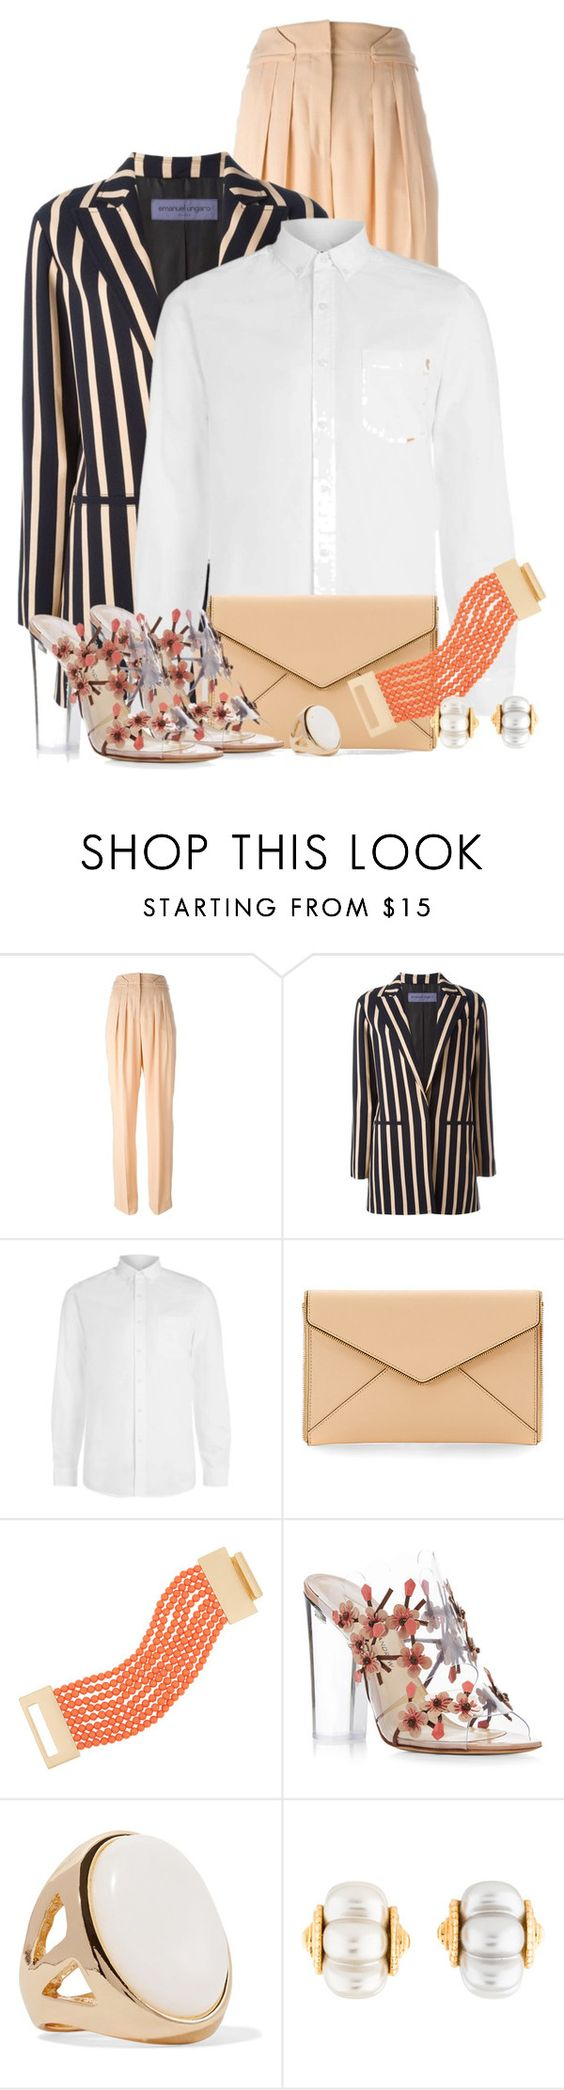 """""""Dramatic Stripes"""" by debpat ❤ liked on Polyvore featuring Emanuel Ungaro, Topman, Rebecca Minkoff, Kenneth Jay Lane and Paul Andrew"""